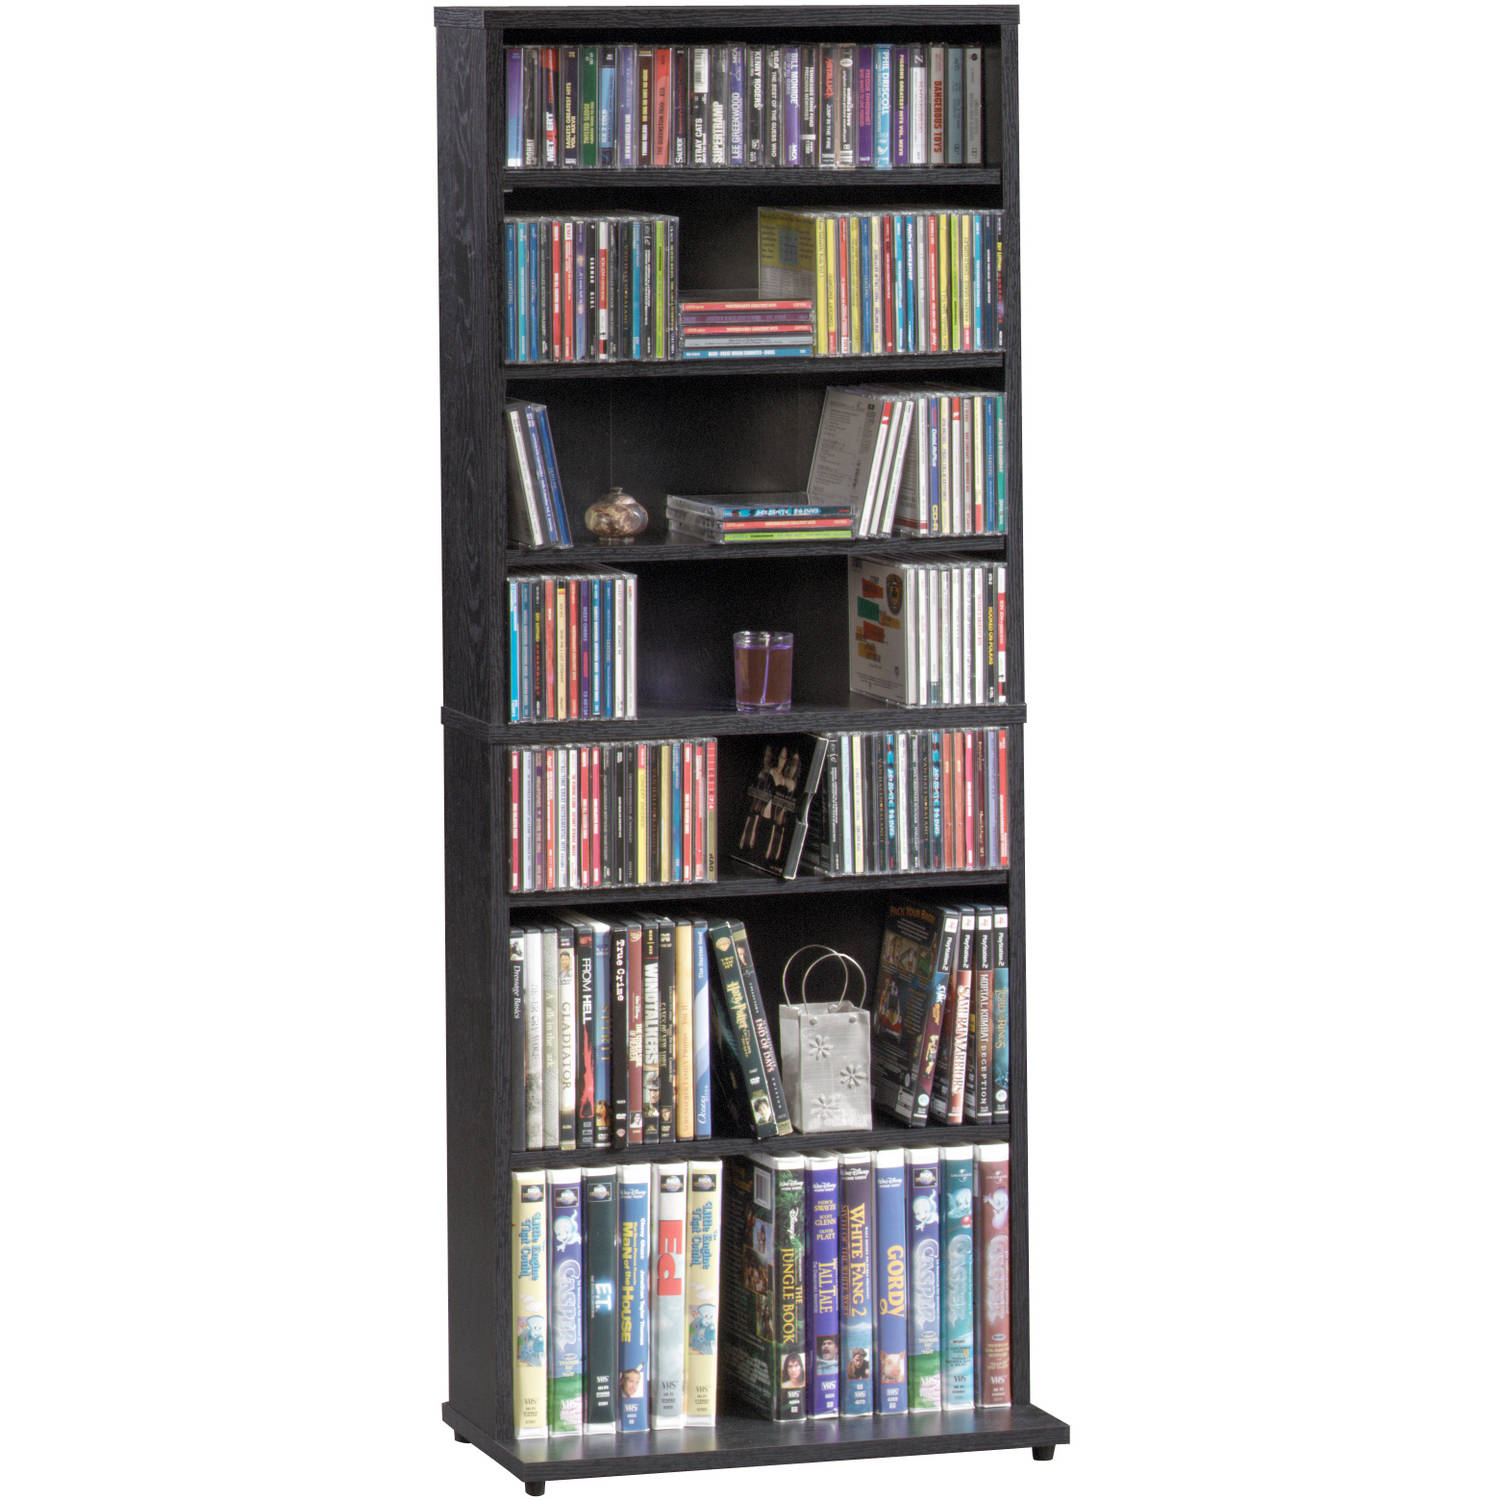 Under $50 - CD/DVD Storage - Walmart.com - Walmart.com